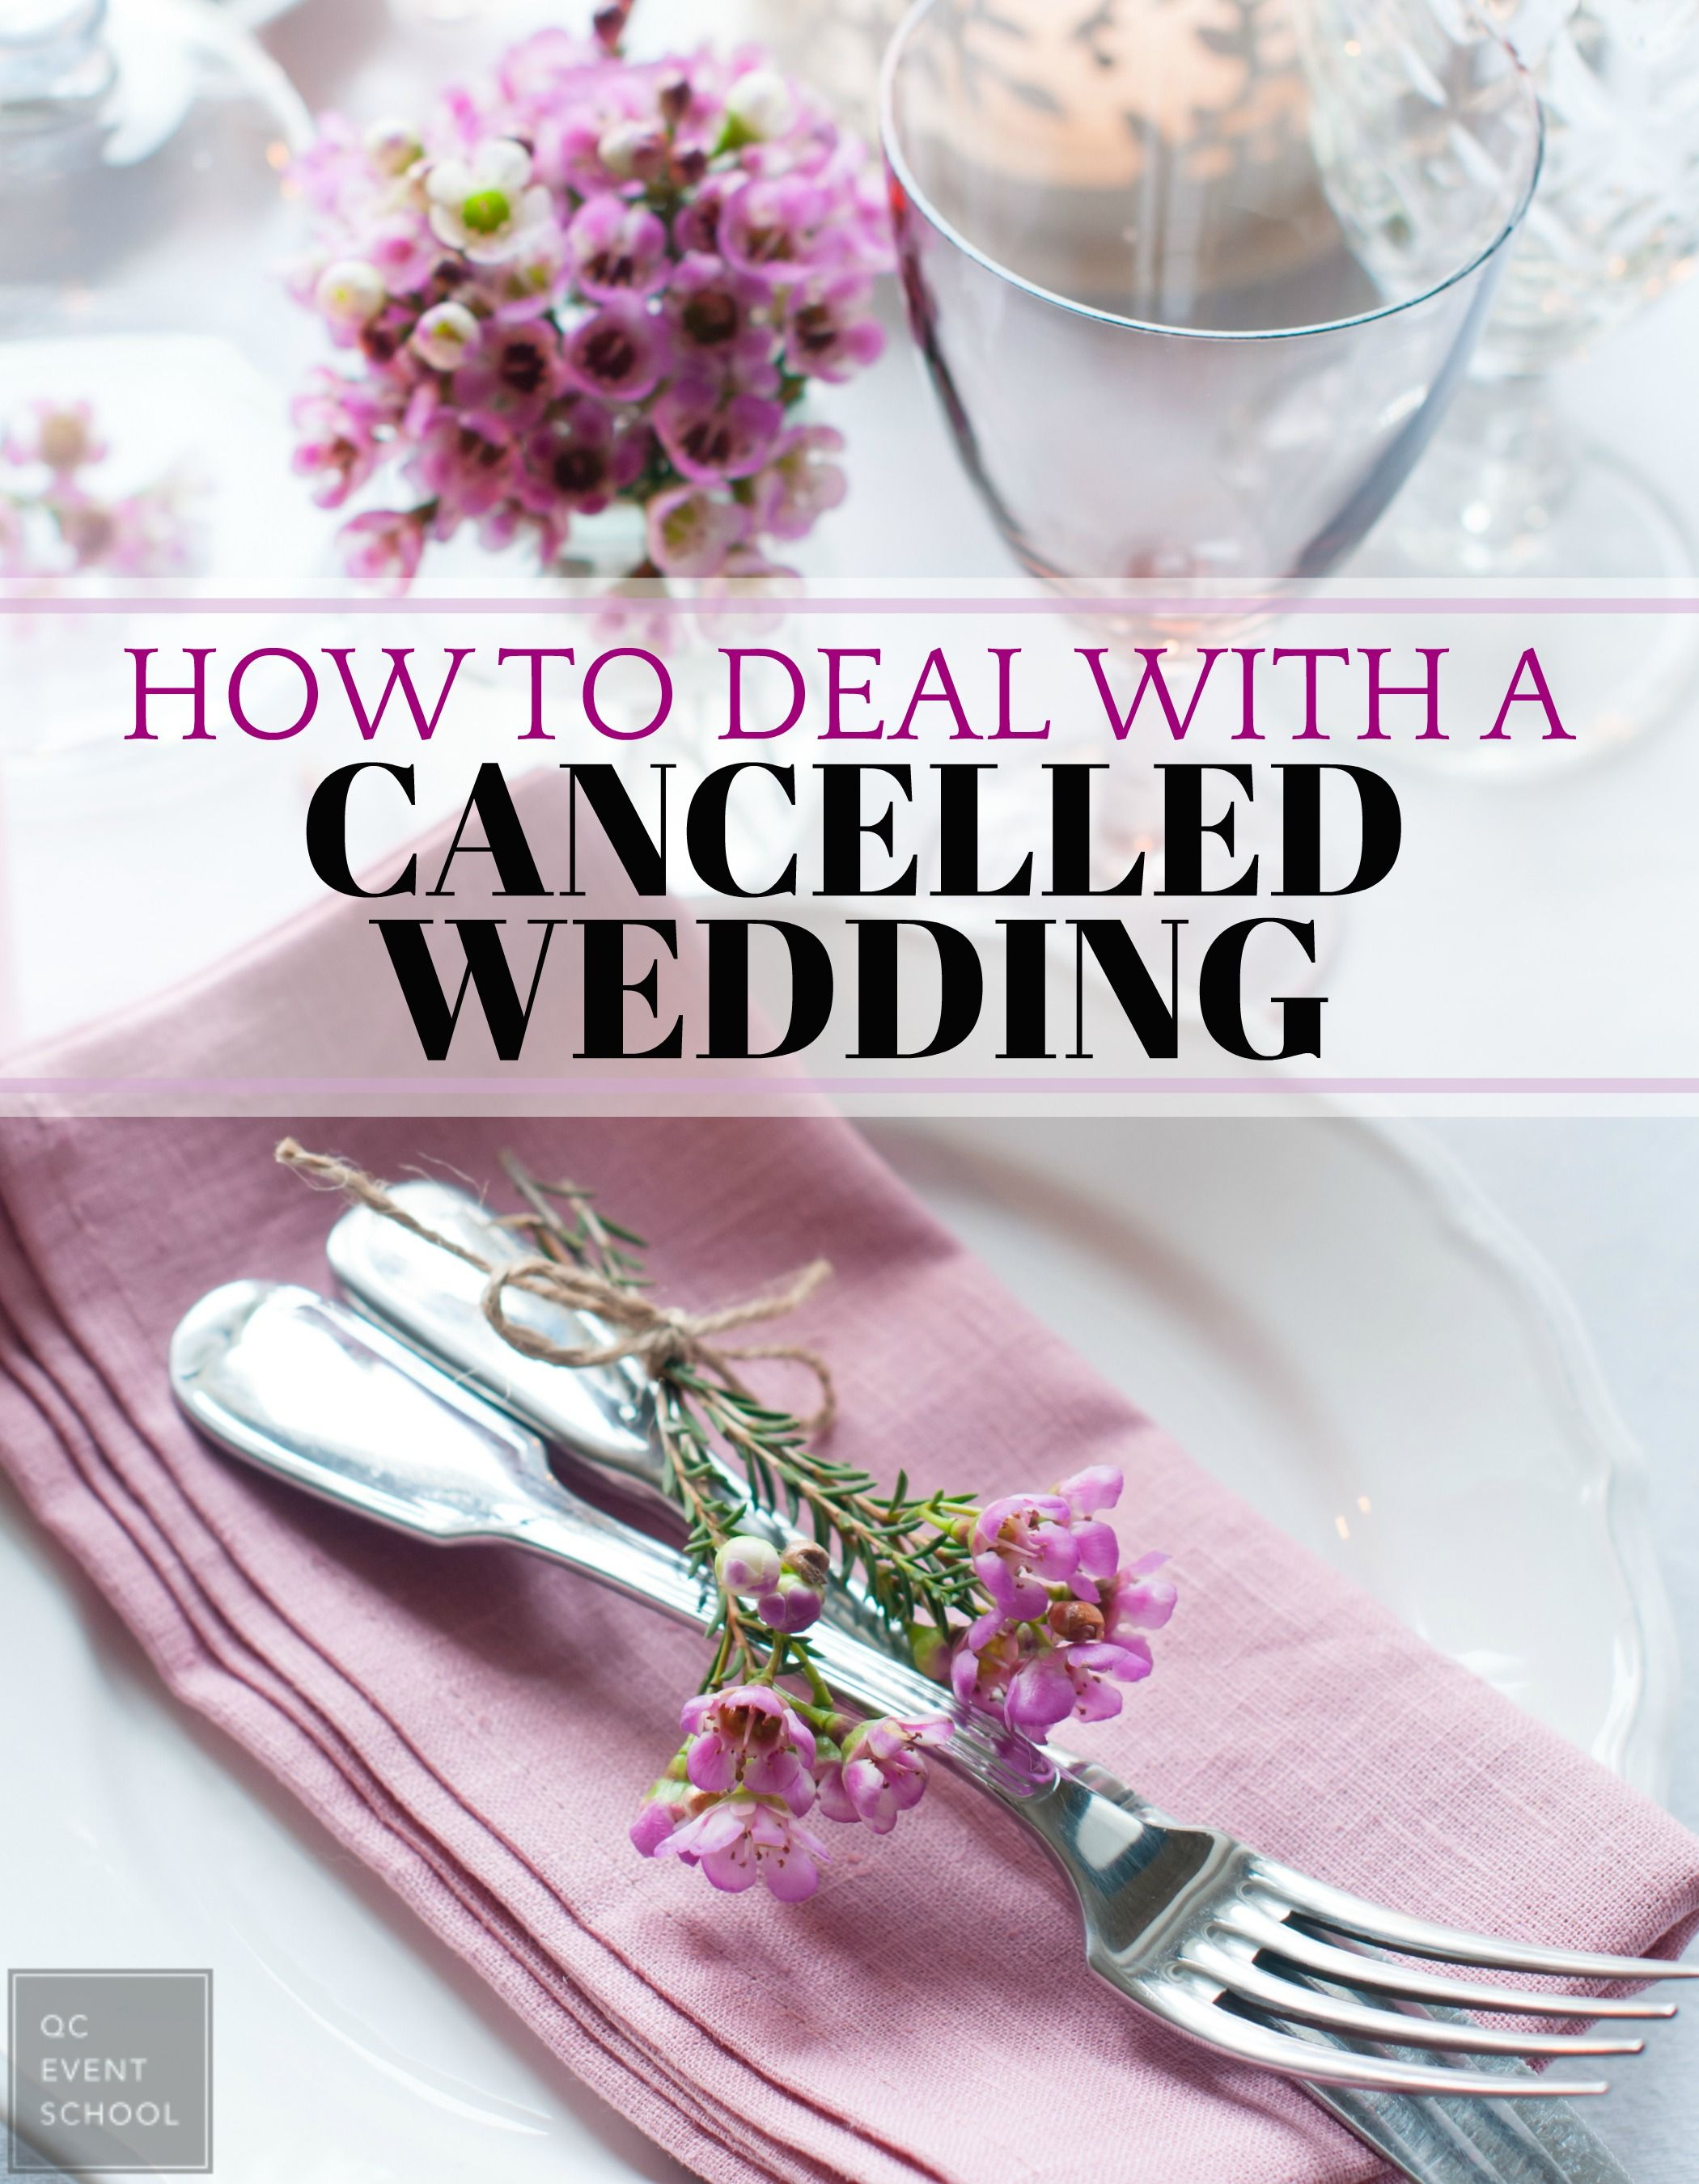 Find Out How To Handle A Cancelled Wedding As Planner With Our Complete Guide